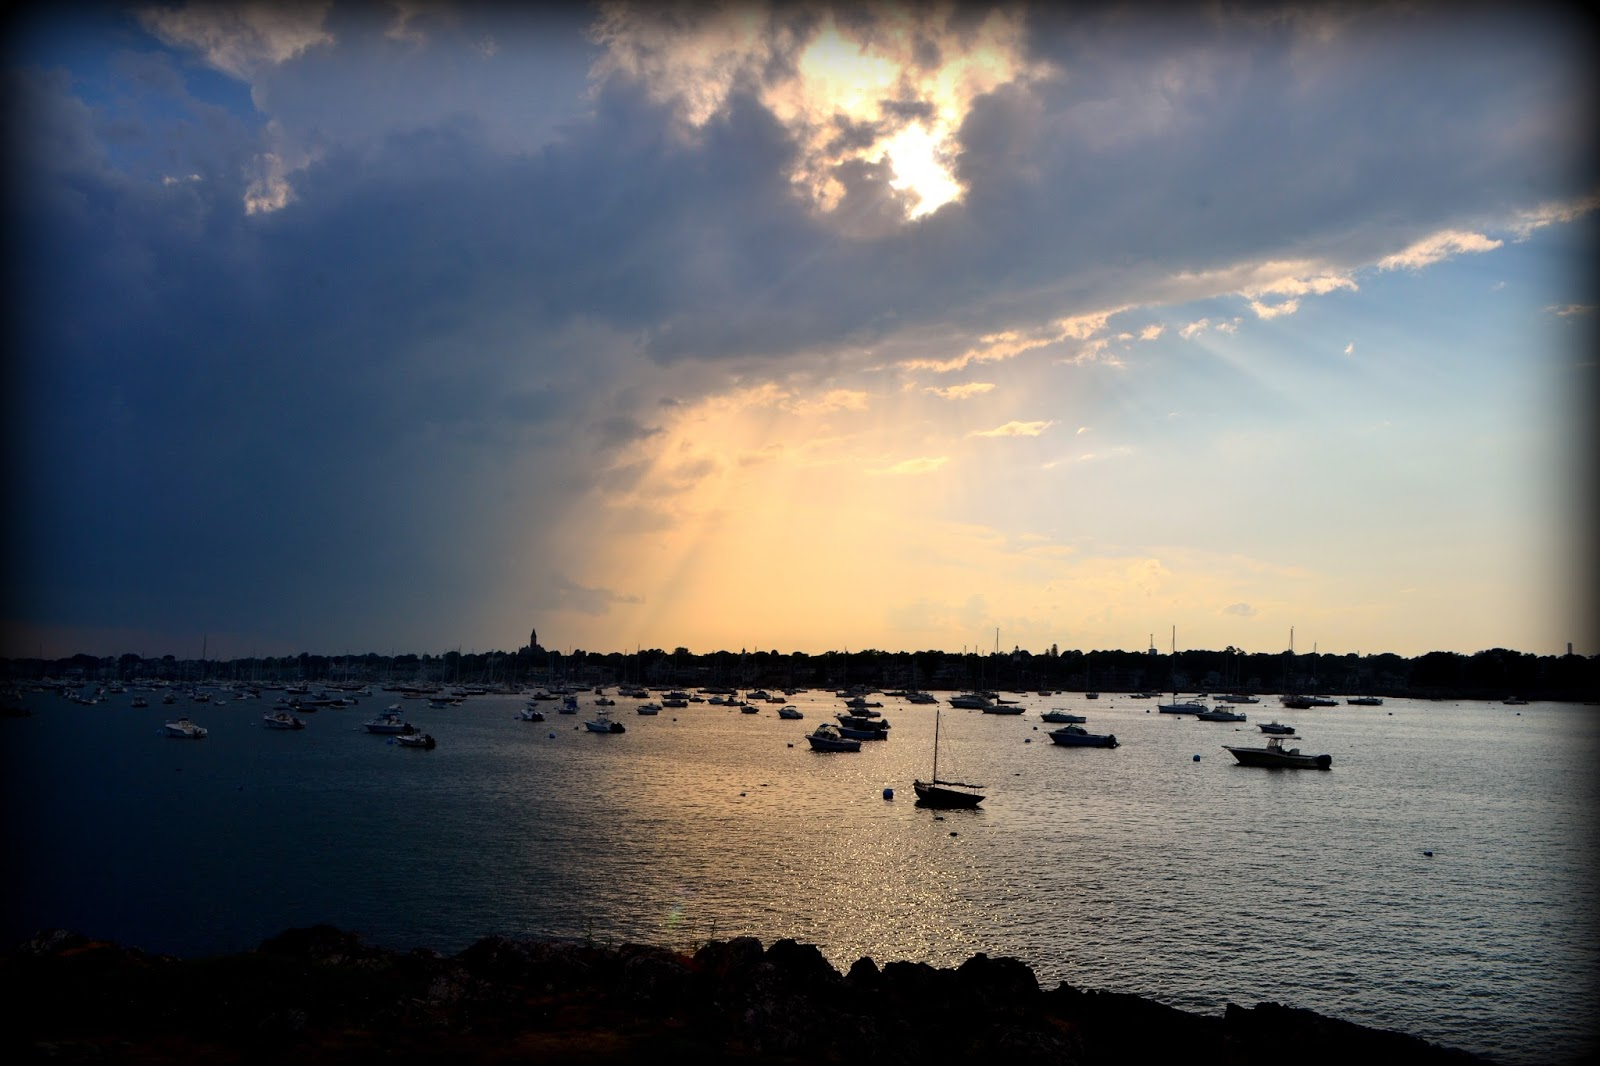 dark, harbor, contrast, boats, marblehead, silhouette